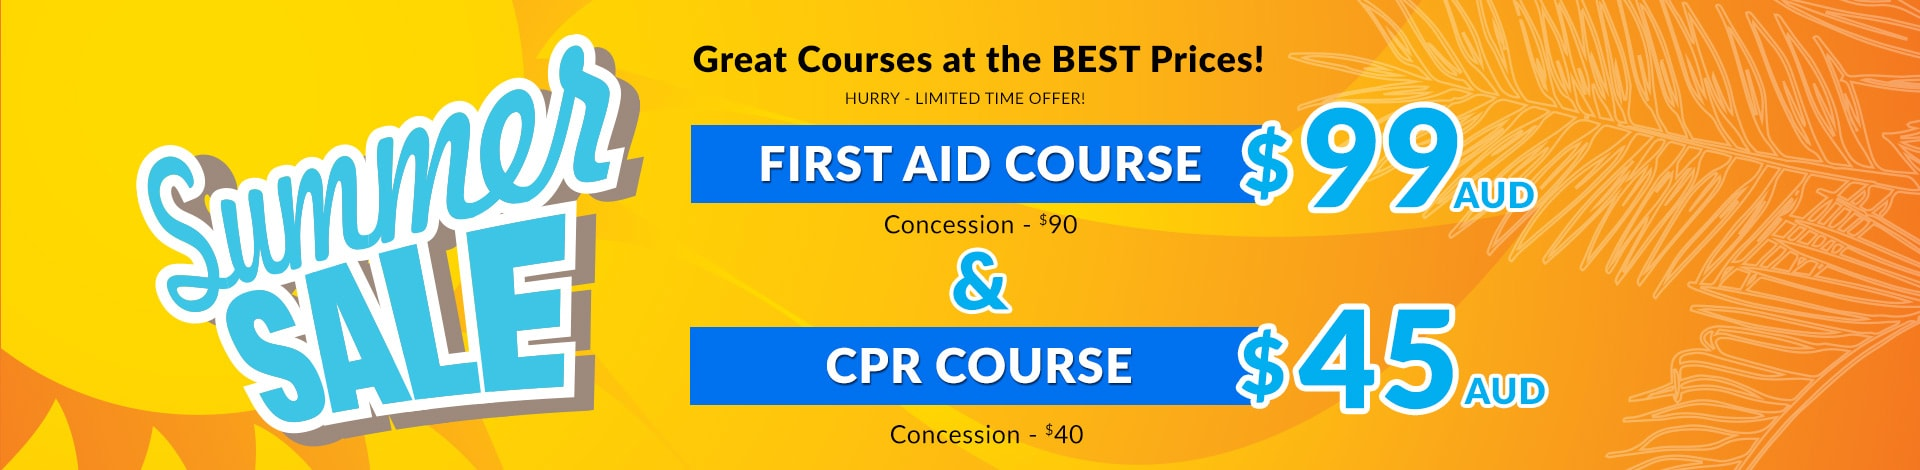 First aid course gold coast cpr course faae summer first aid course sale xflitez Gallery